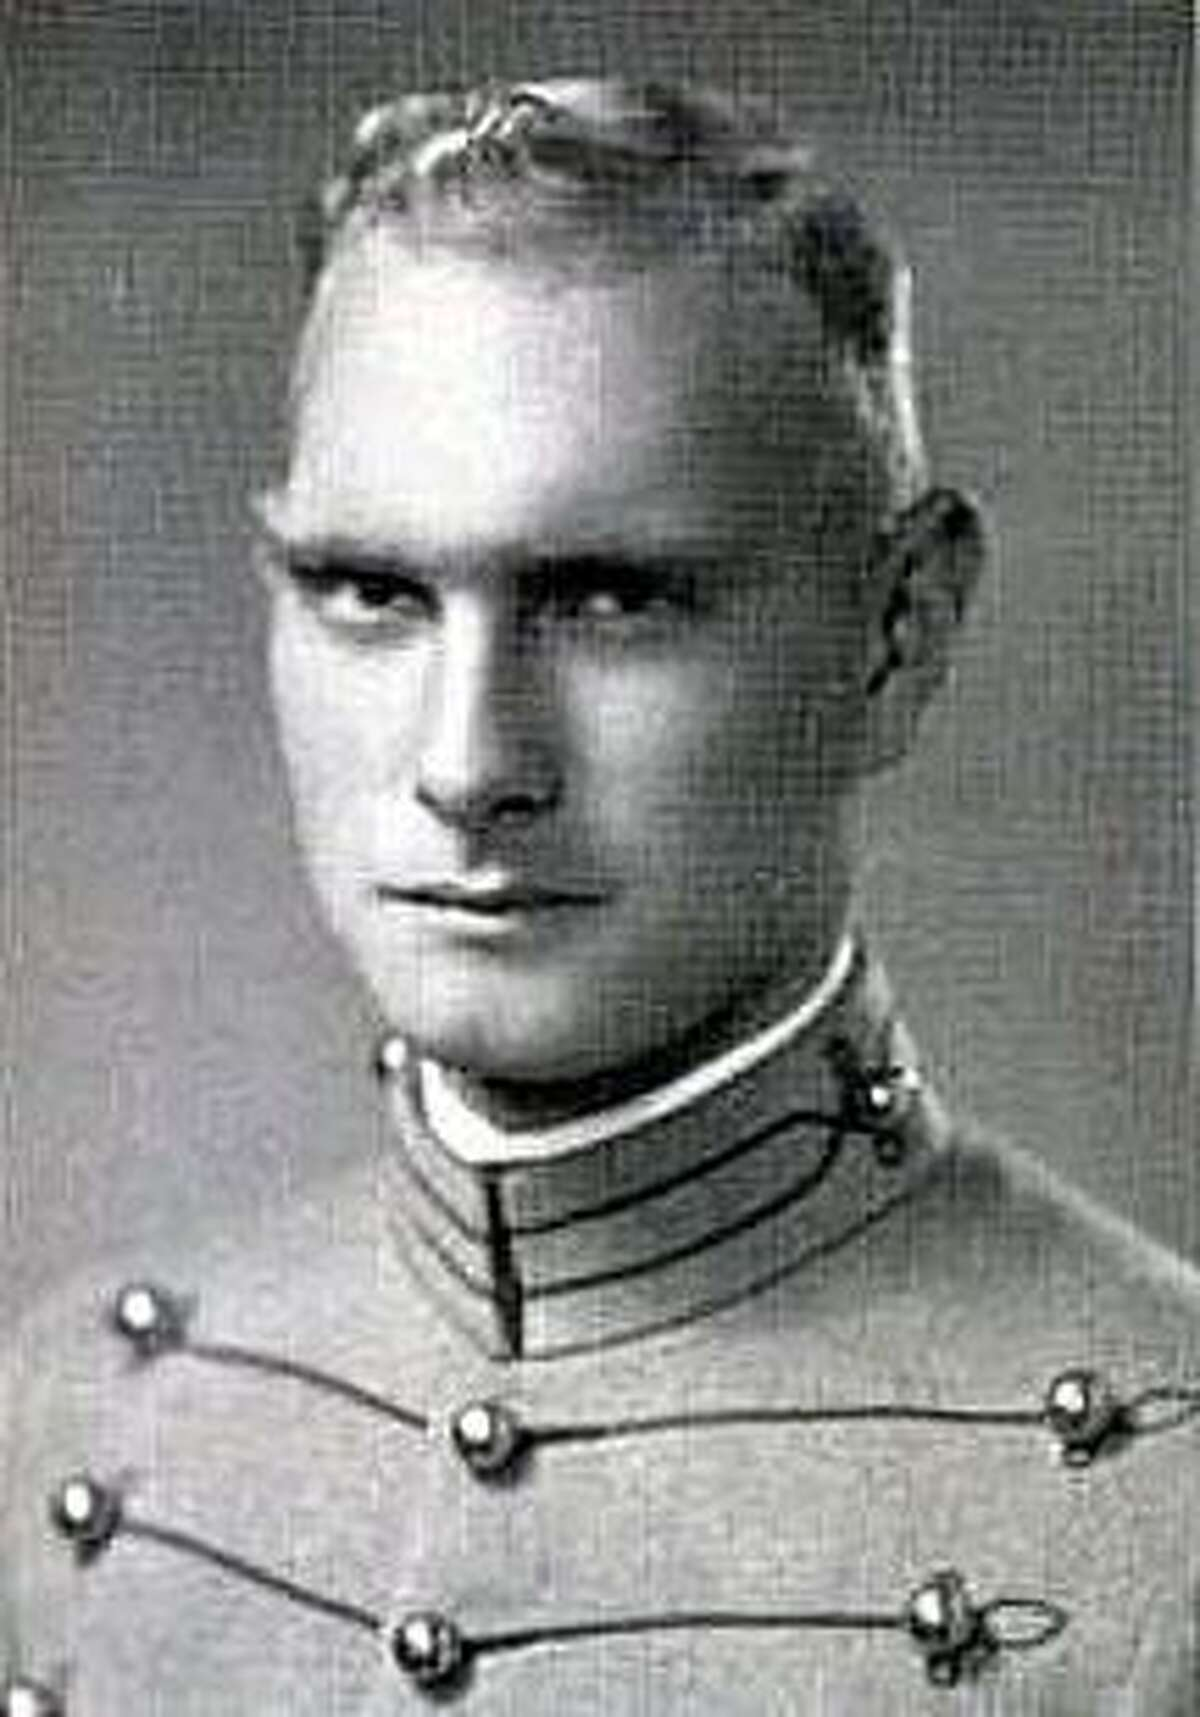 """In West Point's 1937 yearbook, """"firstie"""" (senior) Gordon Custer Leland is described as a """"good field soldier"""" who was """"beset by love's dilemmas."""""""